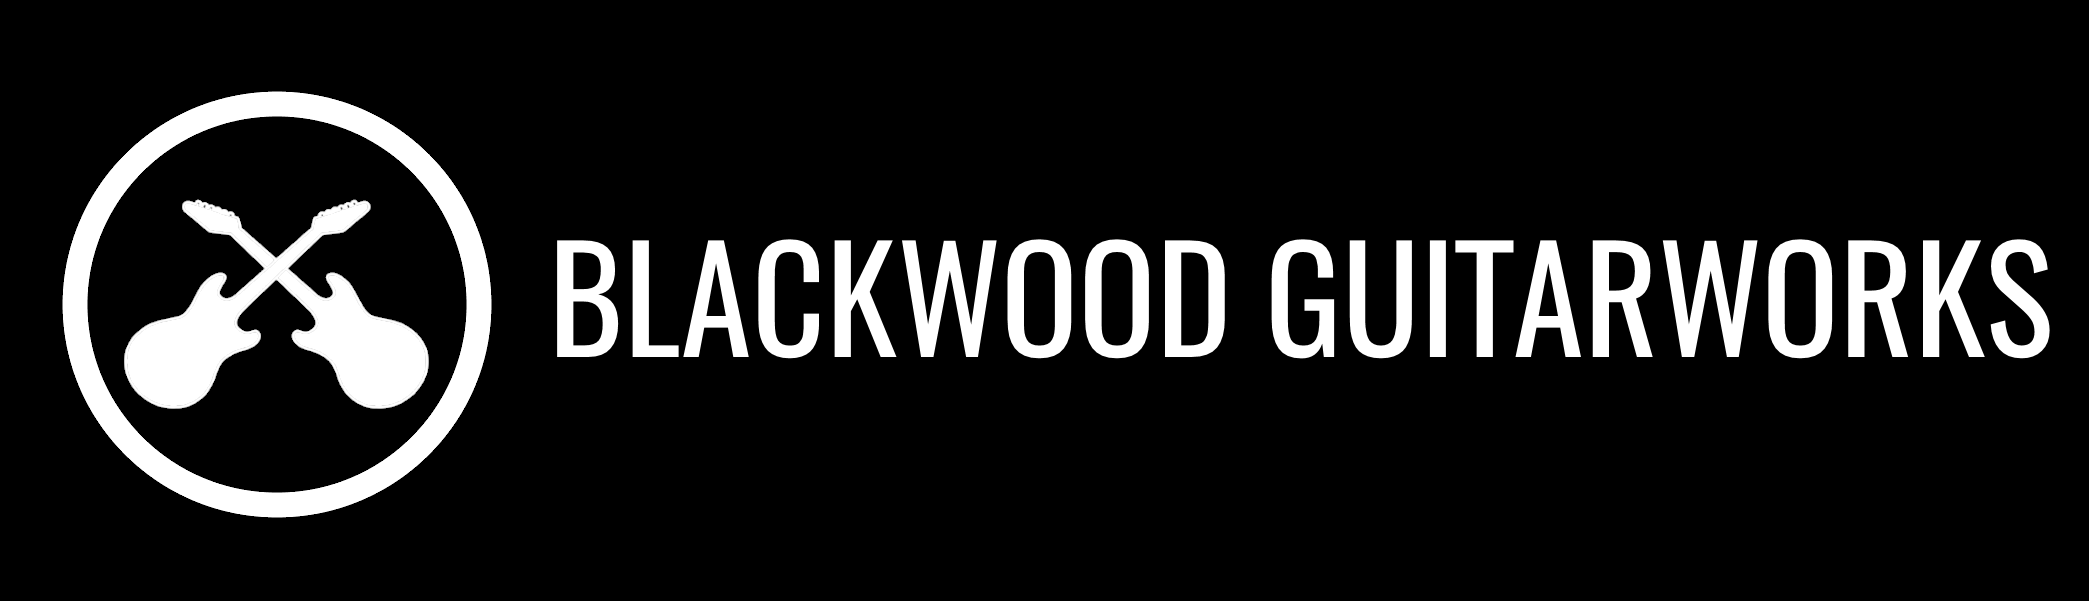 Blackwood Guitarworks